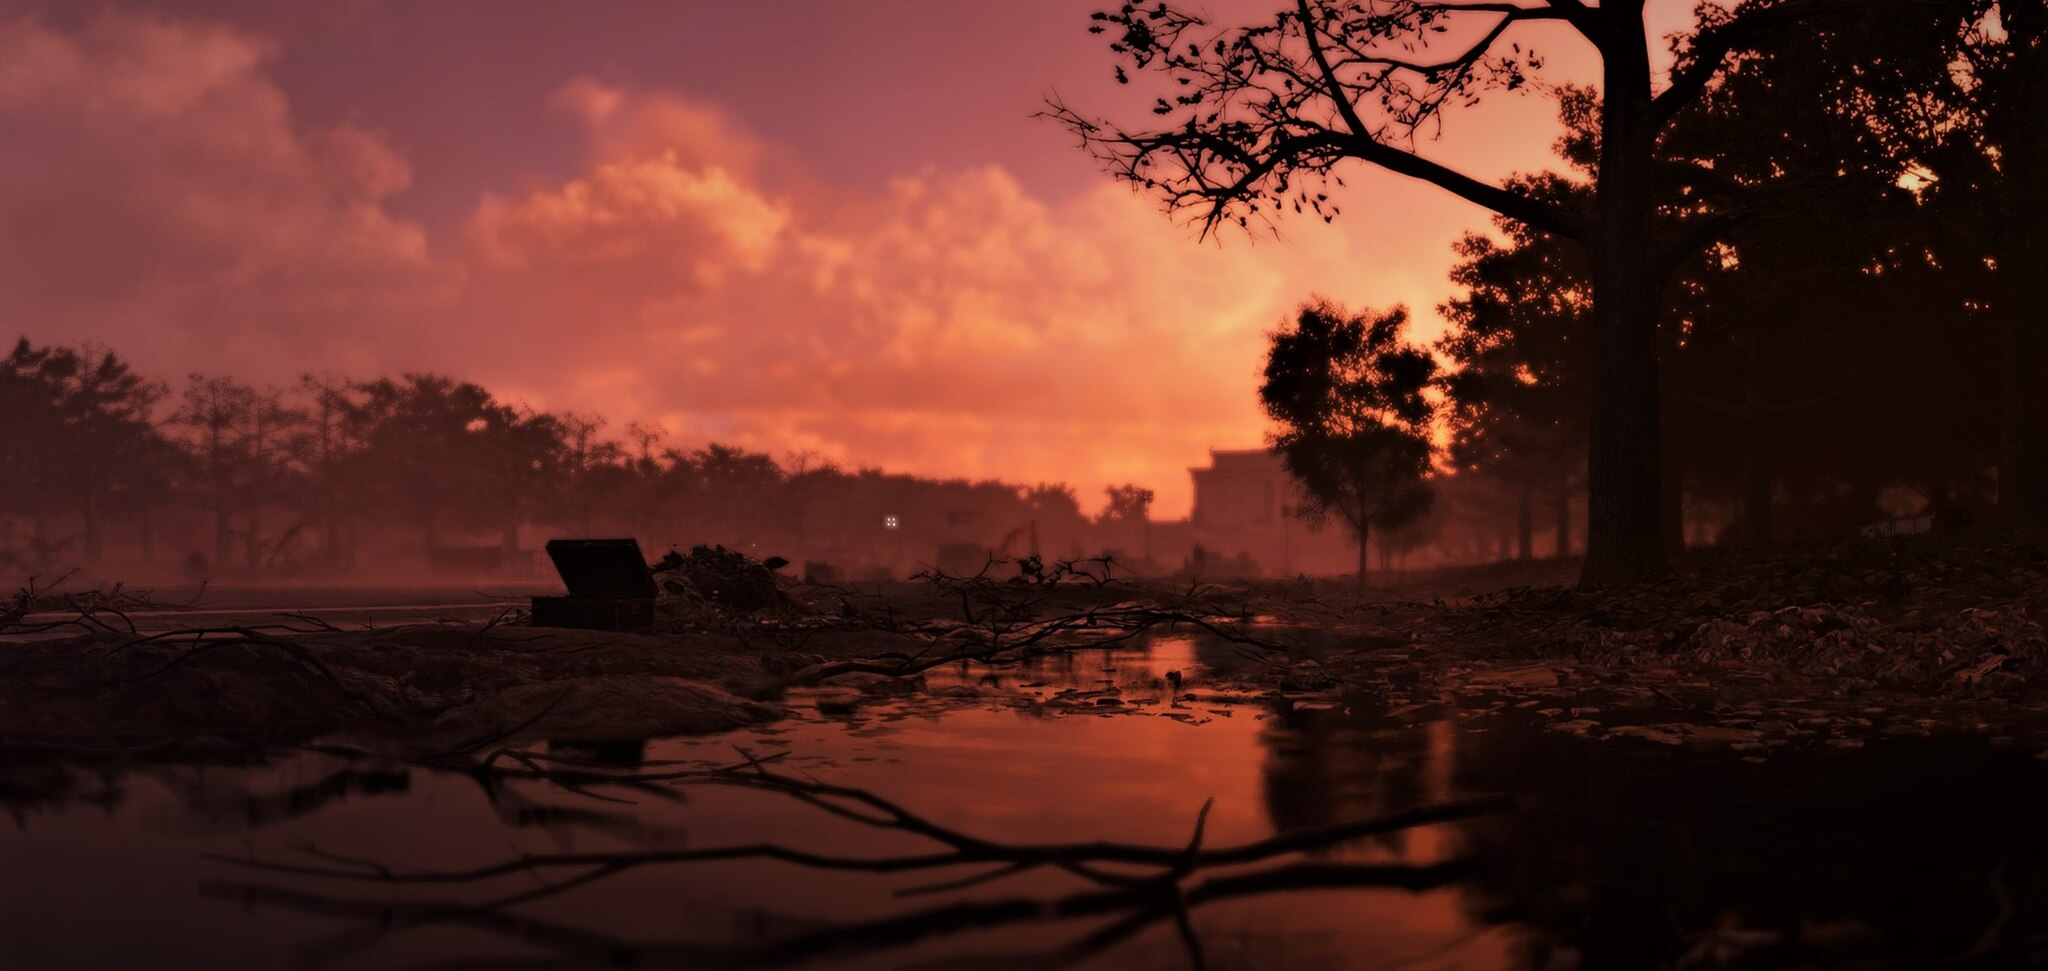 zfjhnfgtdf.jpg - Tom Clancy's The Division 2